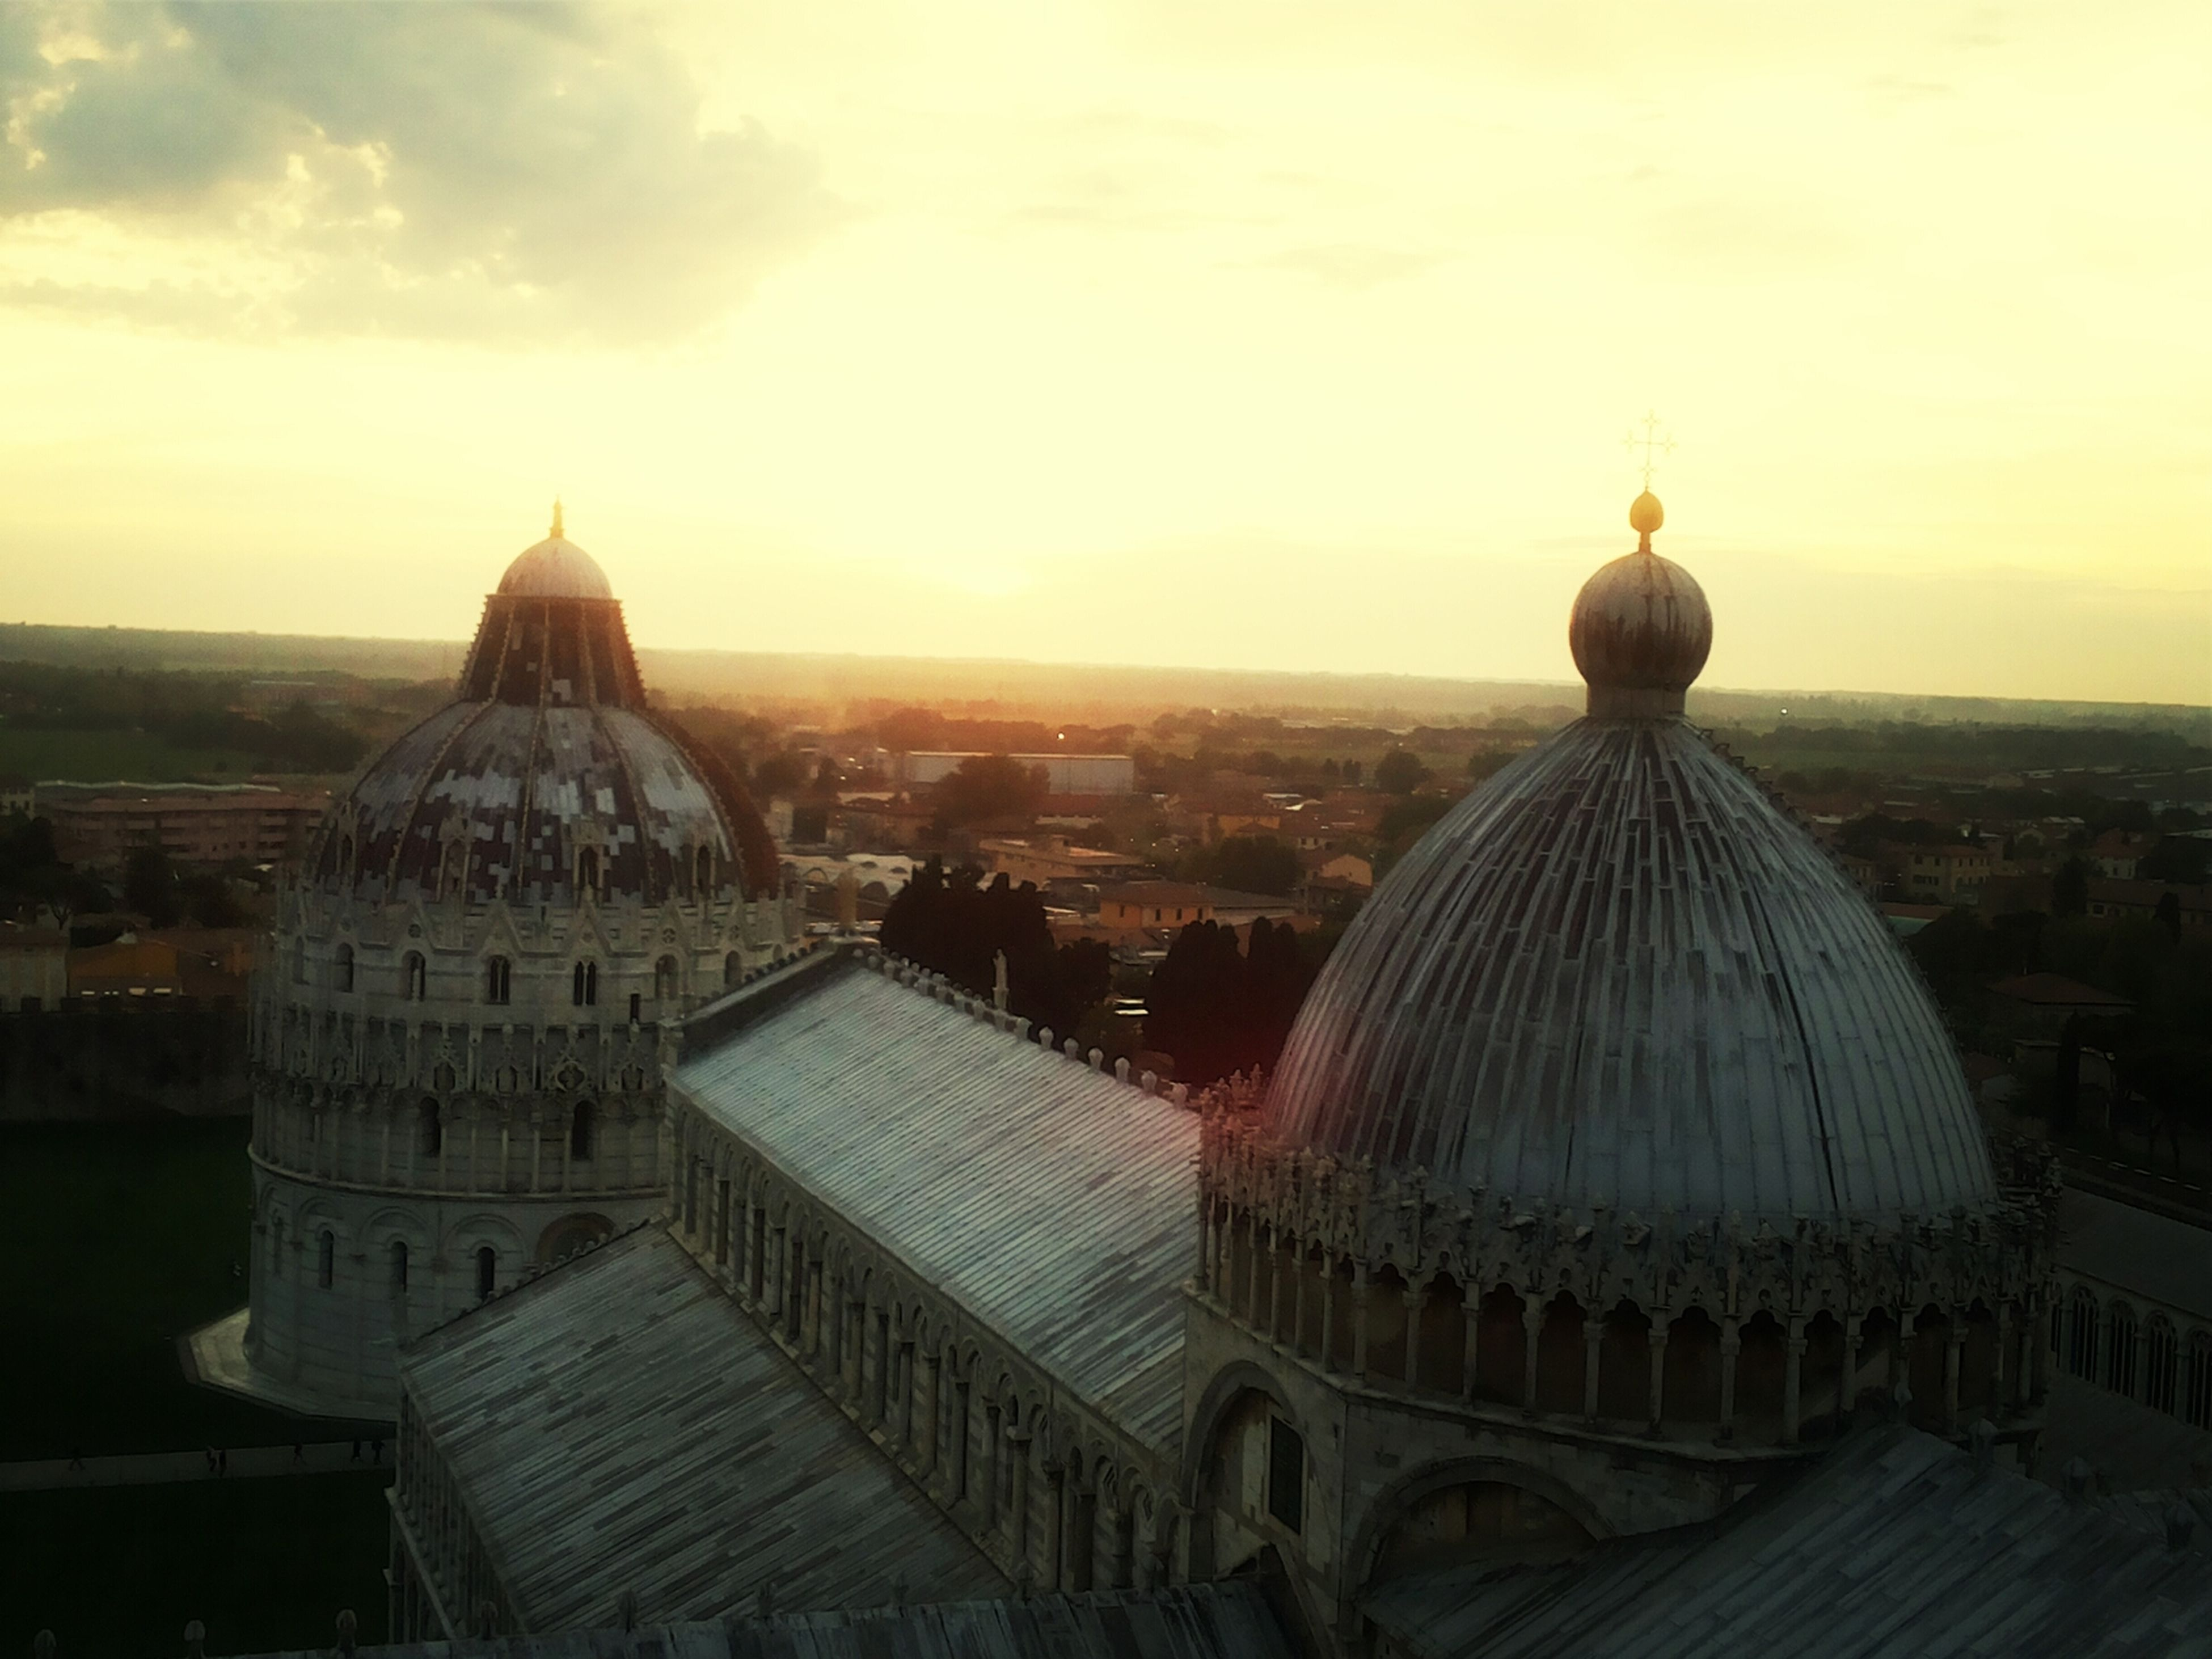 architecture, building exterior, built structure, dome, place of worship, religion, spirituality, sky, sunset, cityscape, city, travel destinations, famous place, church, cathedral, travel, roof, cloud - sky, high angle view